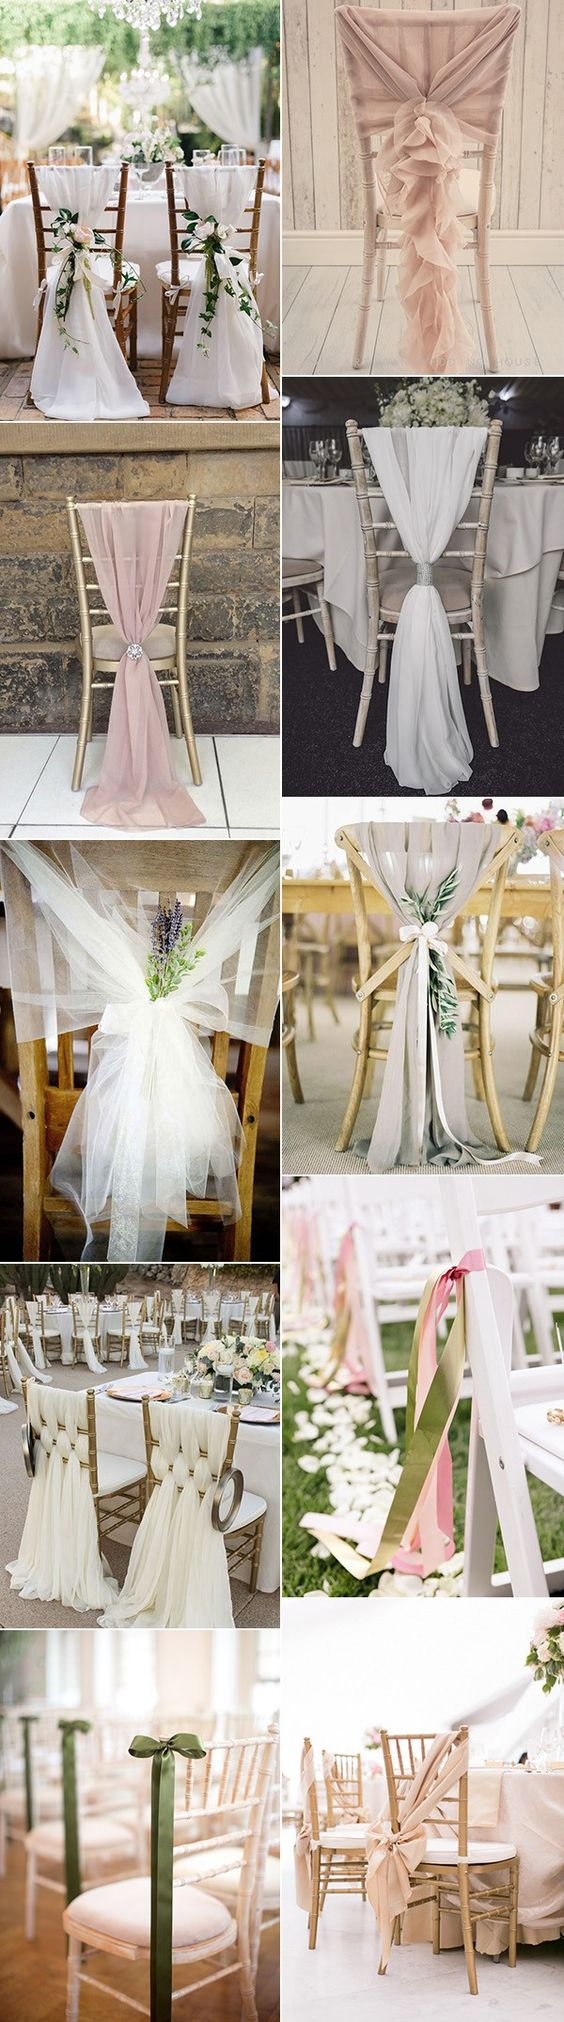 #Beautiful #Decorating #Most #The #Ways #Wedding #diy #crafts Please RT: https://t.co/OXJ37sfYoS https://t.co/ez7cbHzeuK